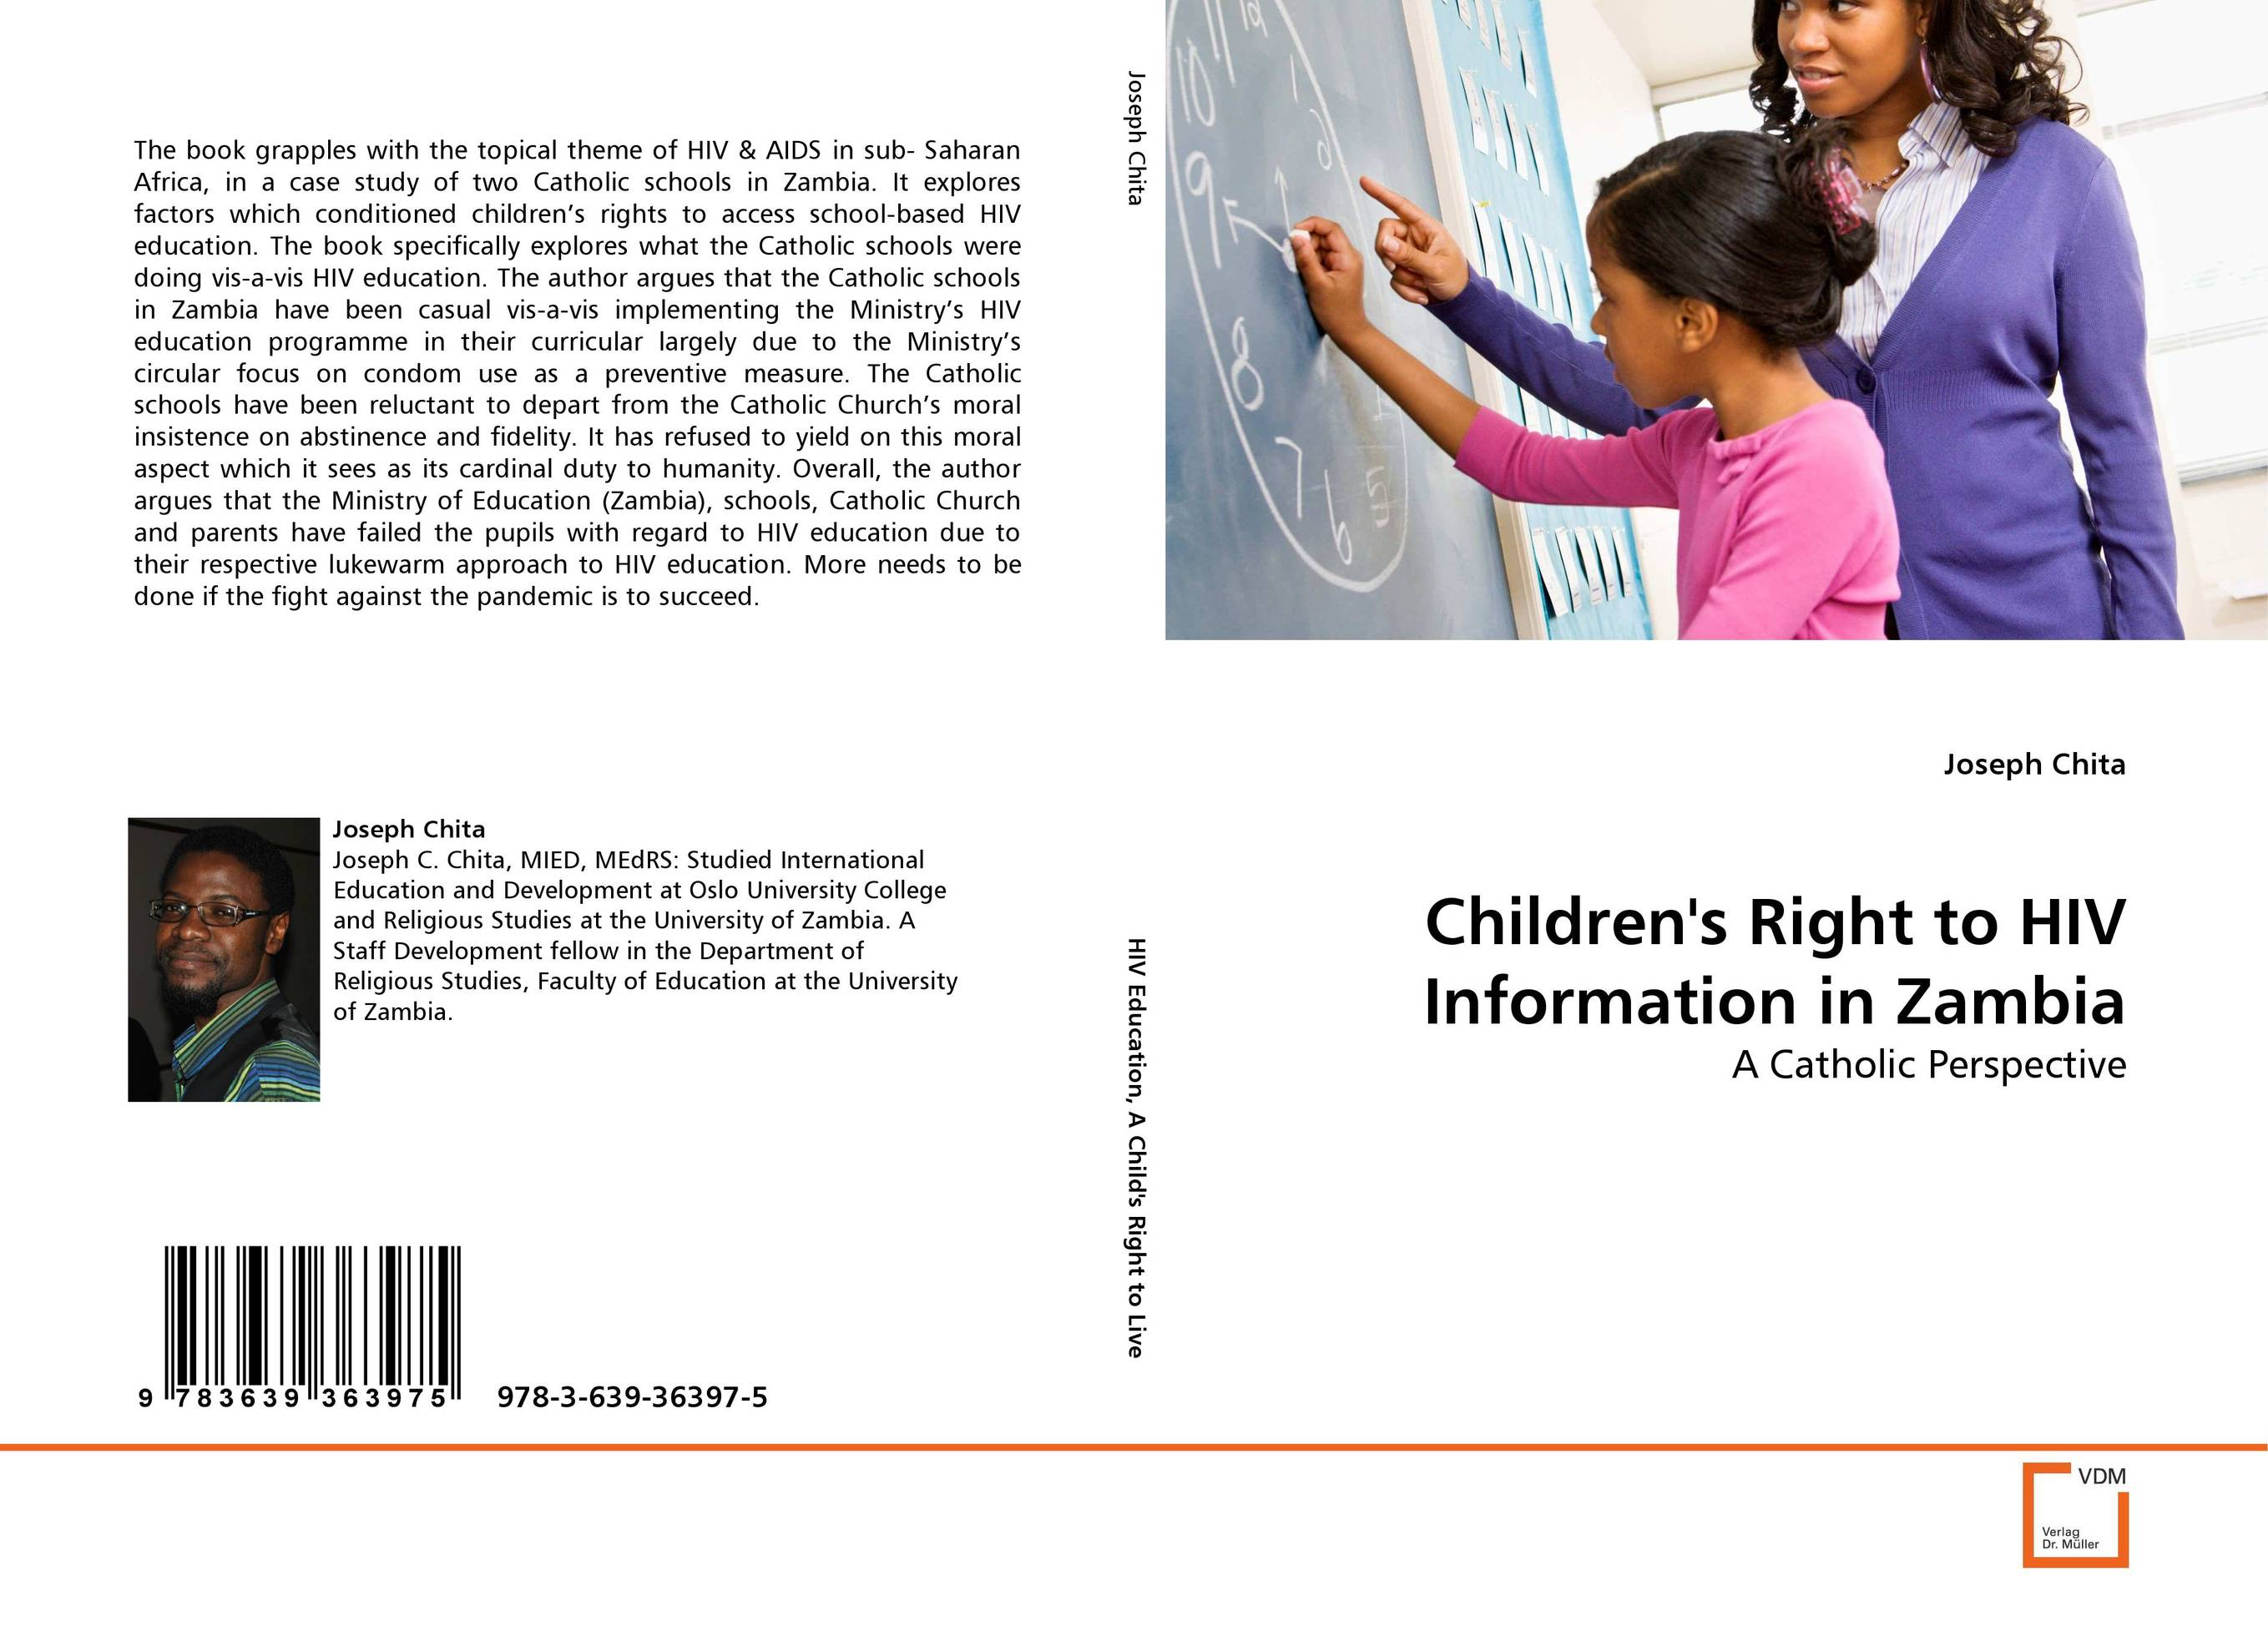 Children''s Right to HIV Information in Zambia reflective approach to education